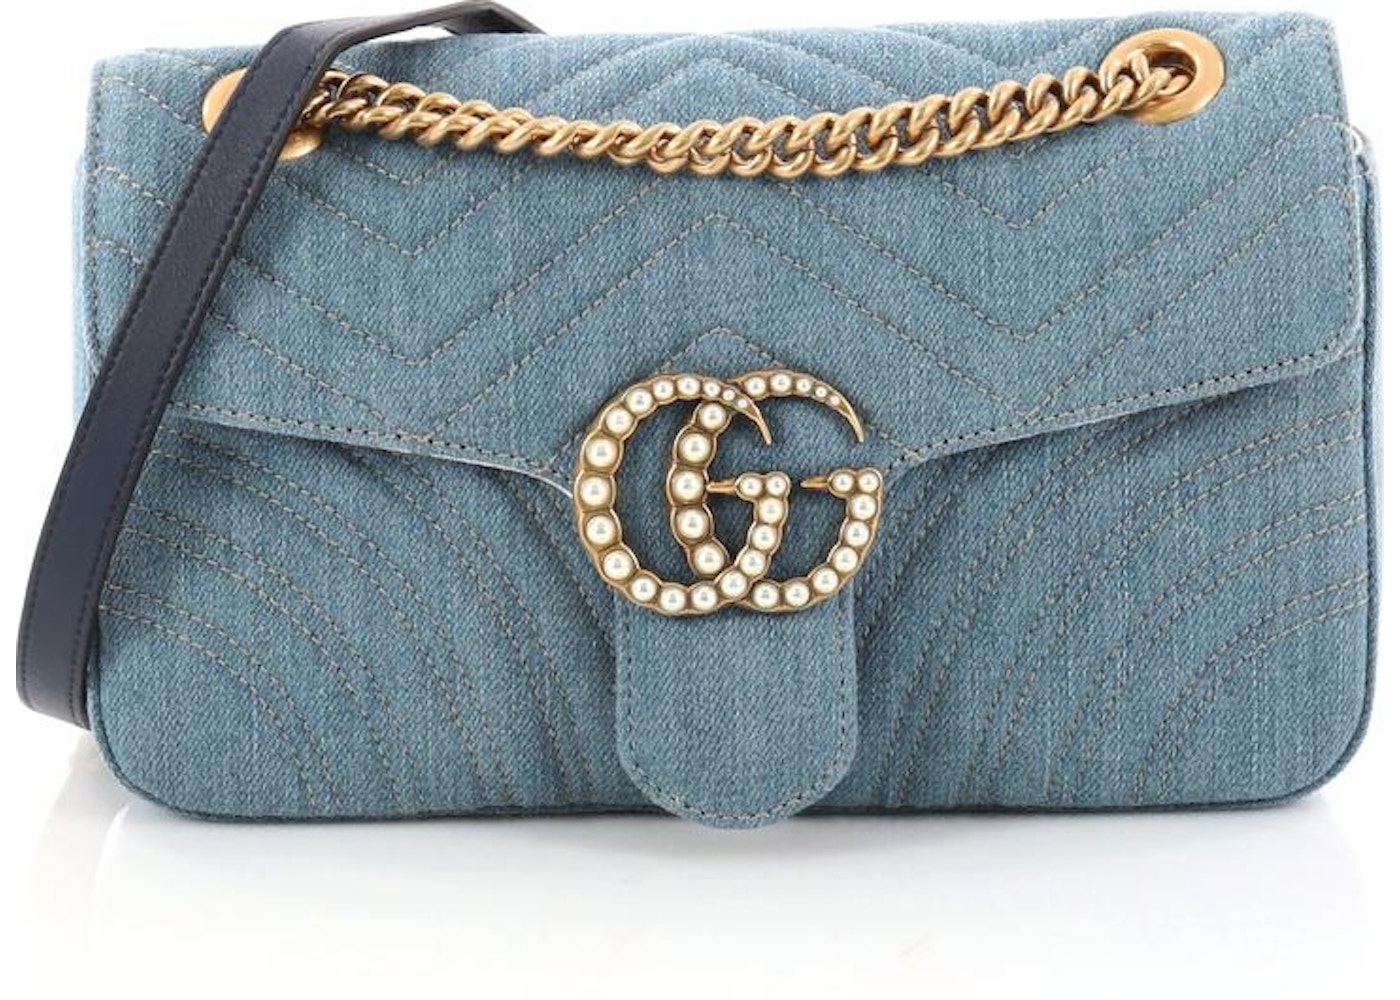 58fe3acfd32a Gucci Marmont Flap Matelasse Pearly GG Small Blue